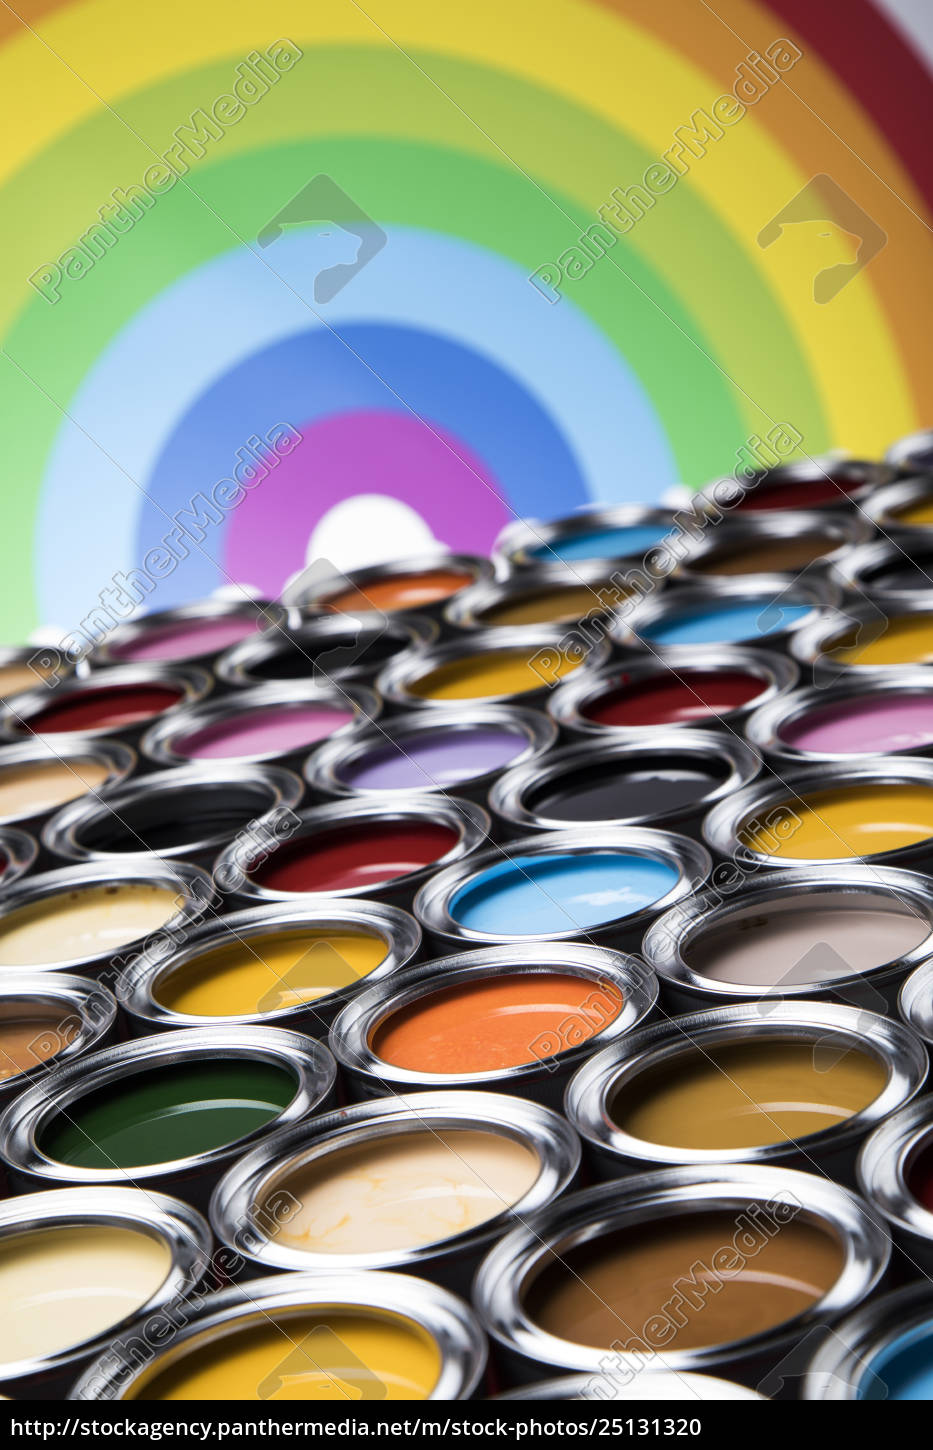 rainbow, colors, , open, cans, of, paint - 25131320